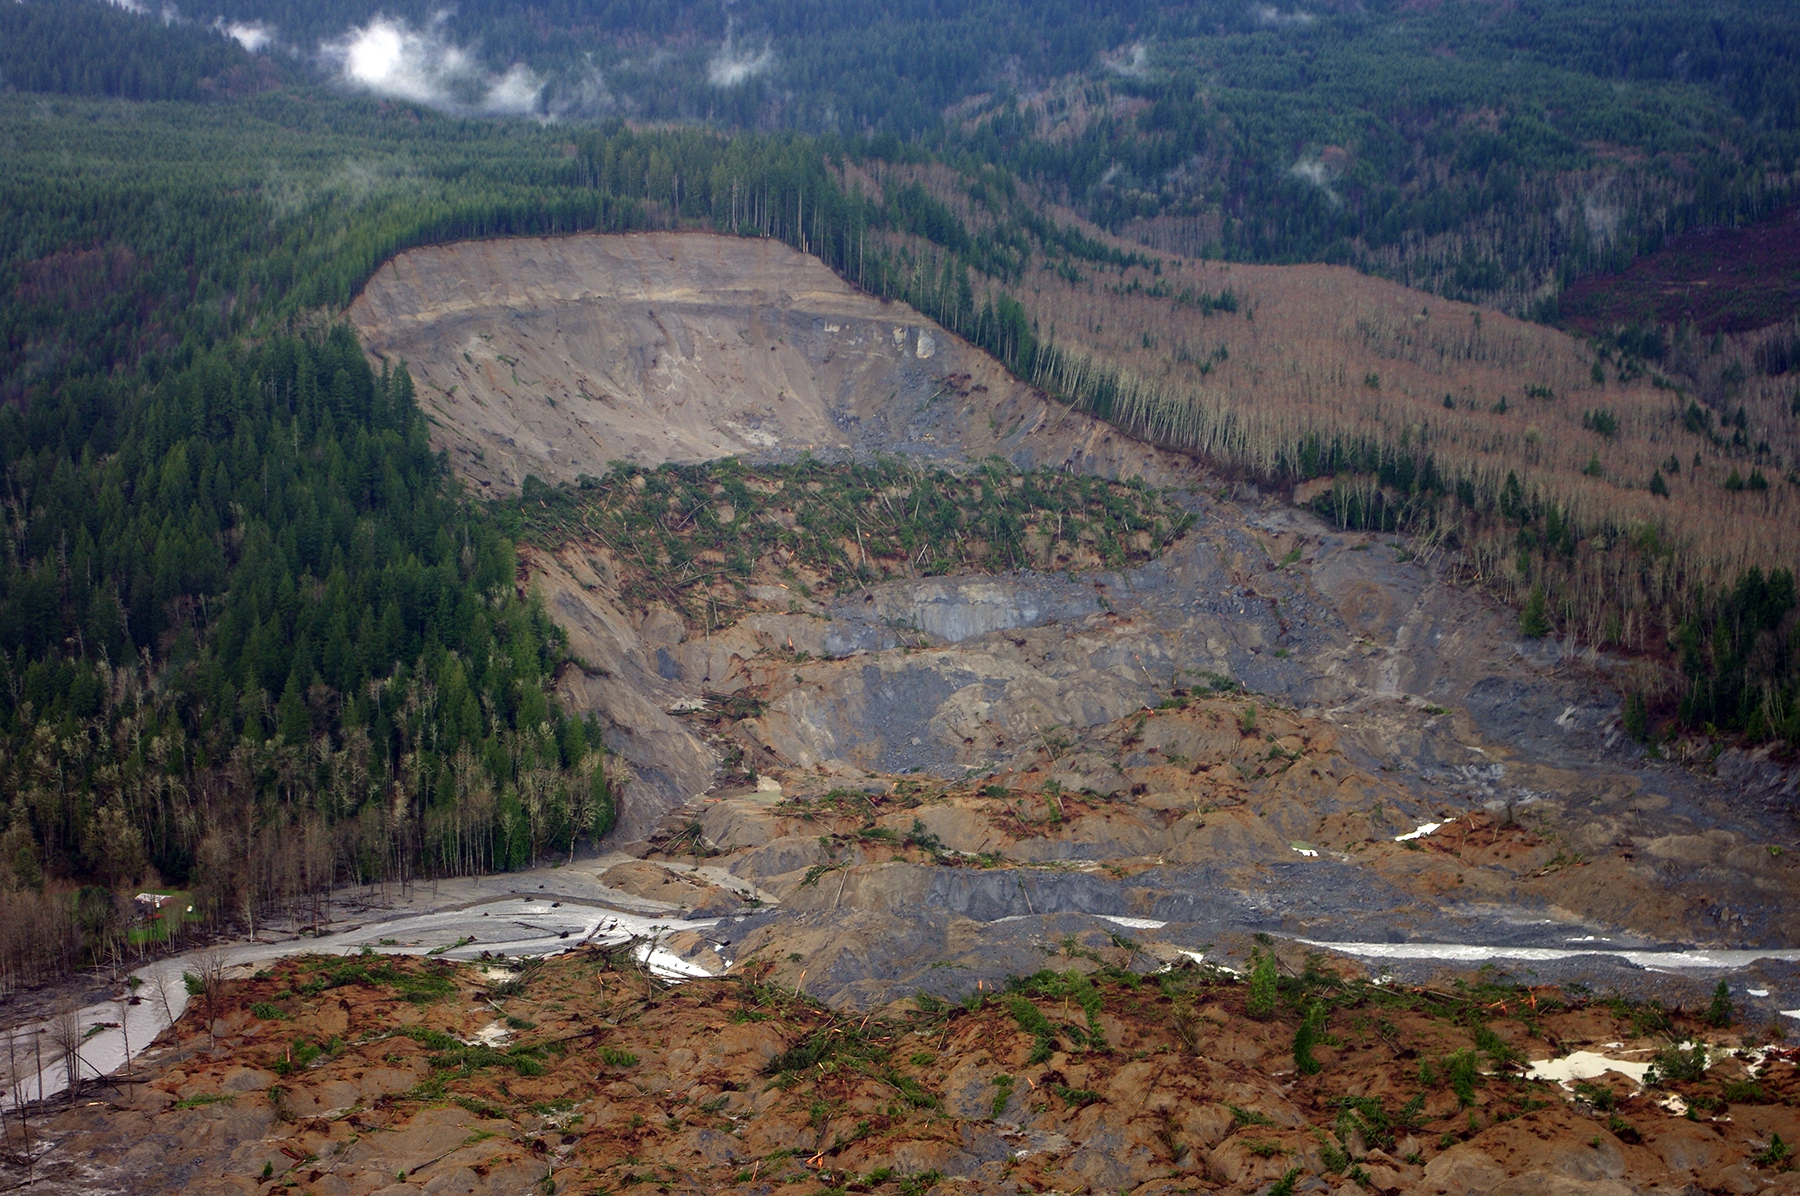 Covering Your Climate: Pacific Northwest Rides Adaptation Wave